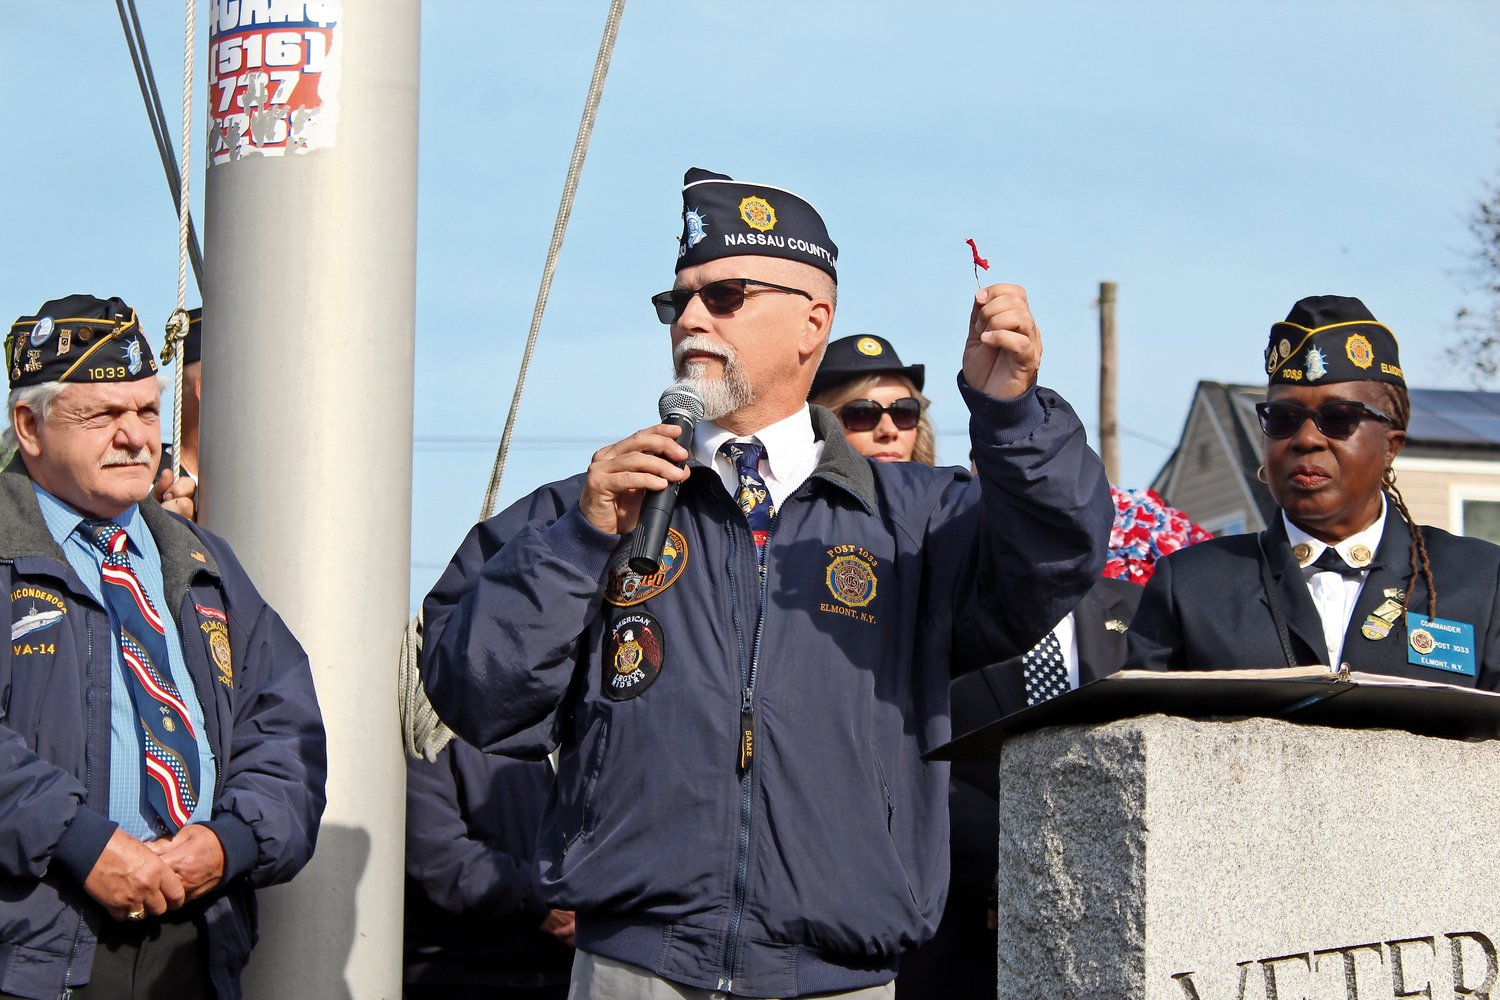 Immediate Past Commander Steve McManus spoke about the history of the day.